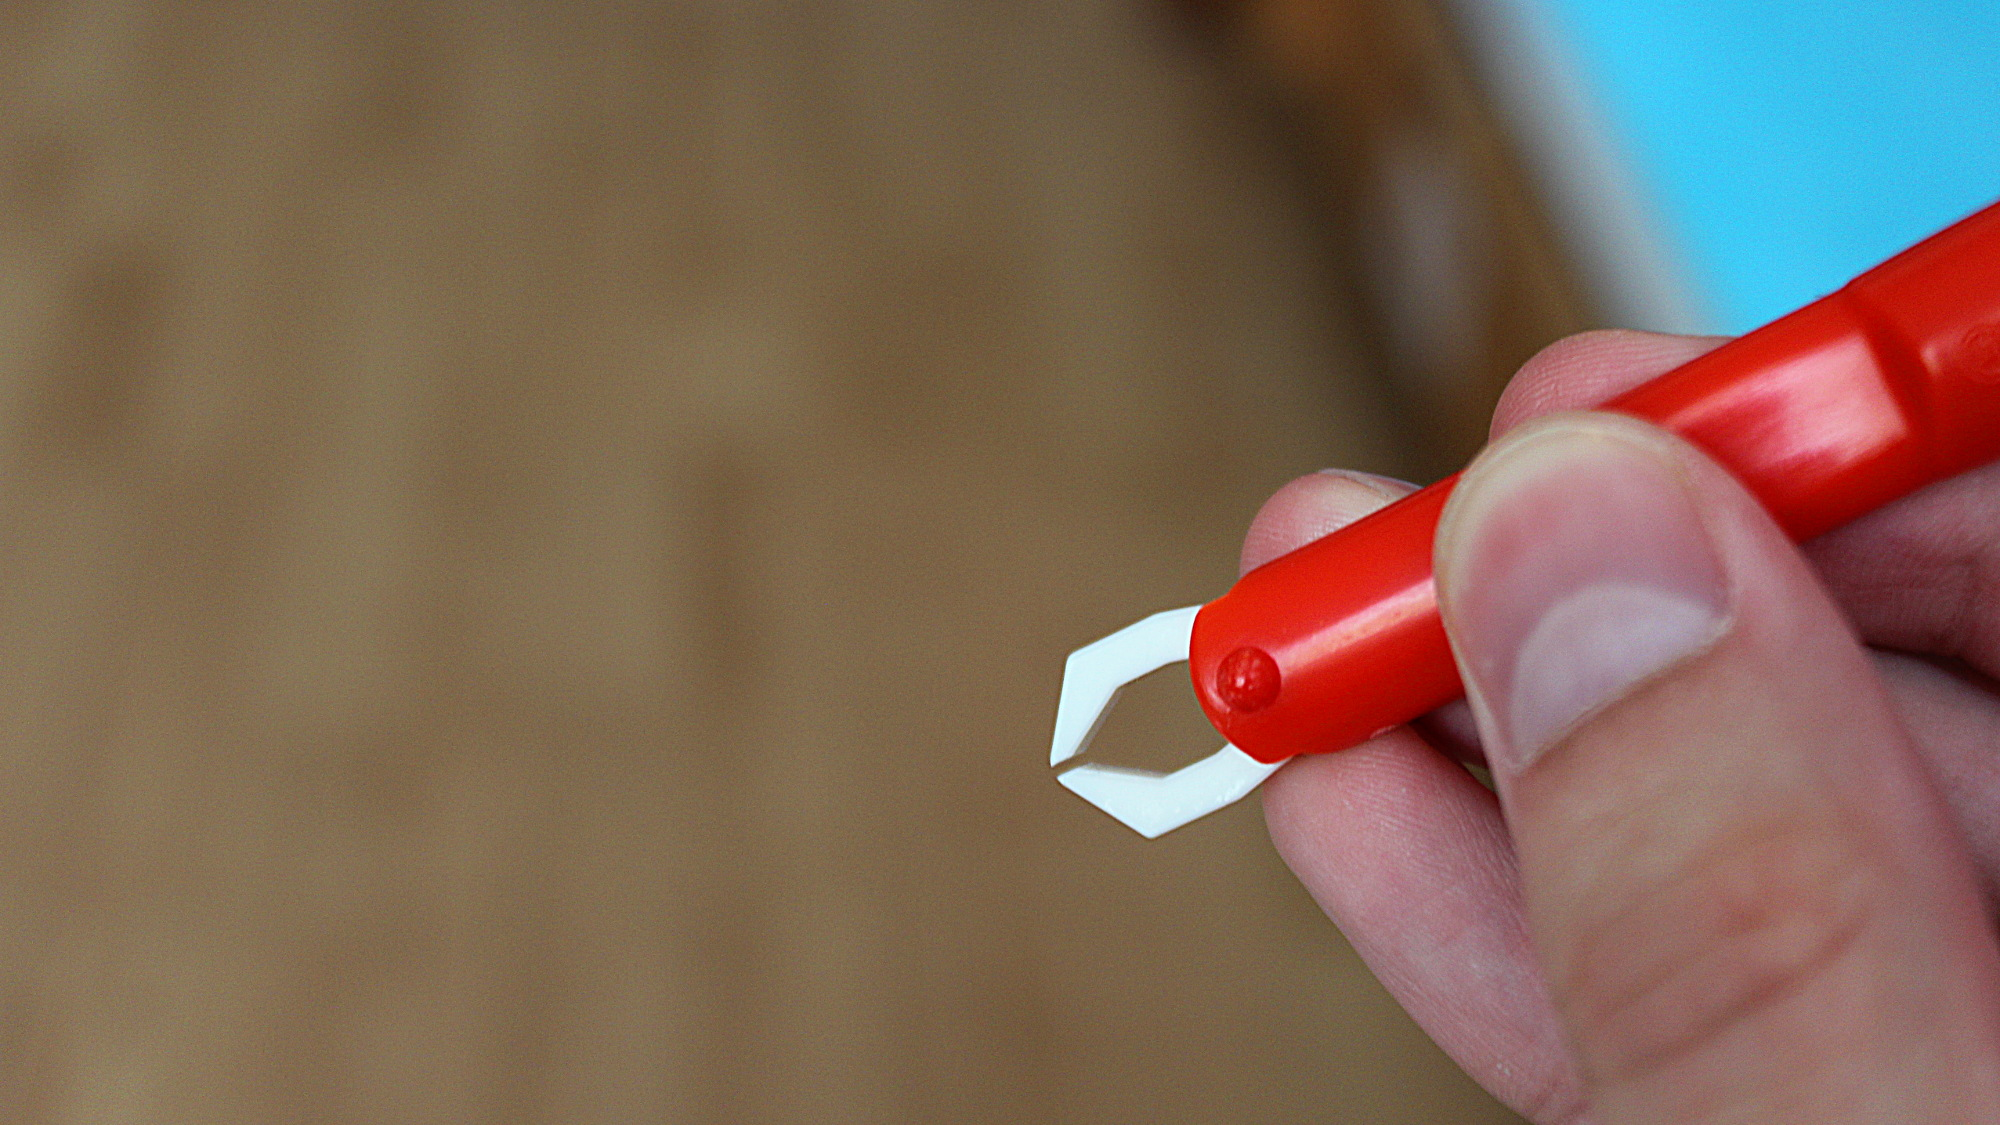 Red tick tweezers bought from pharmacy.